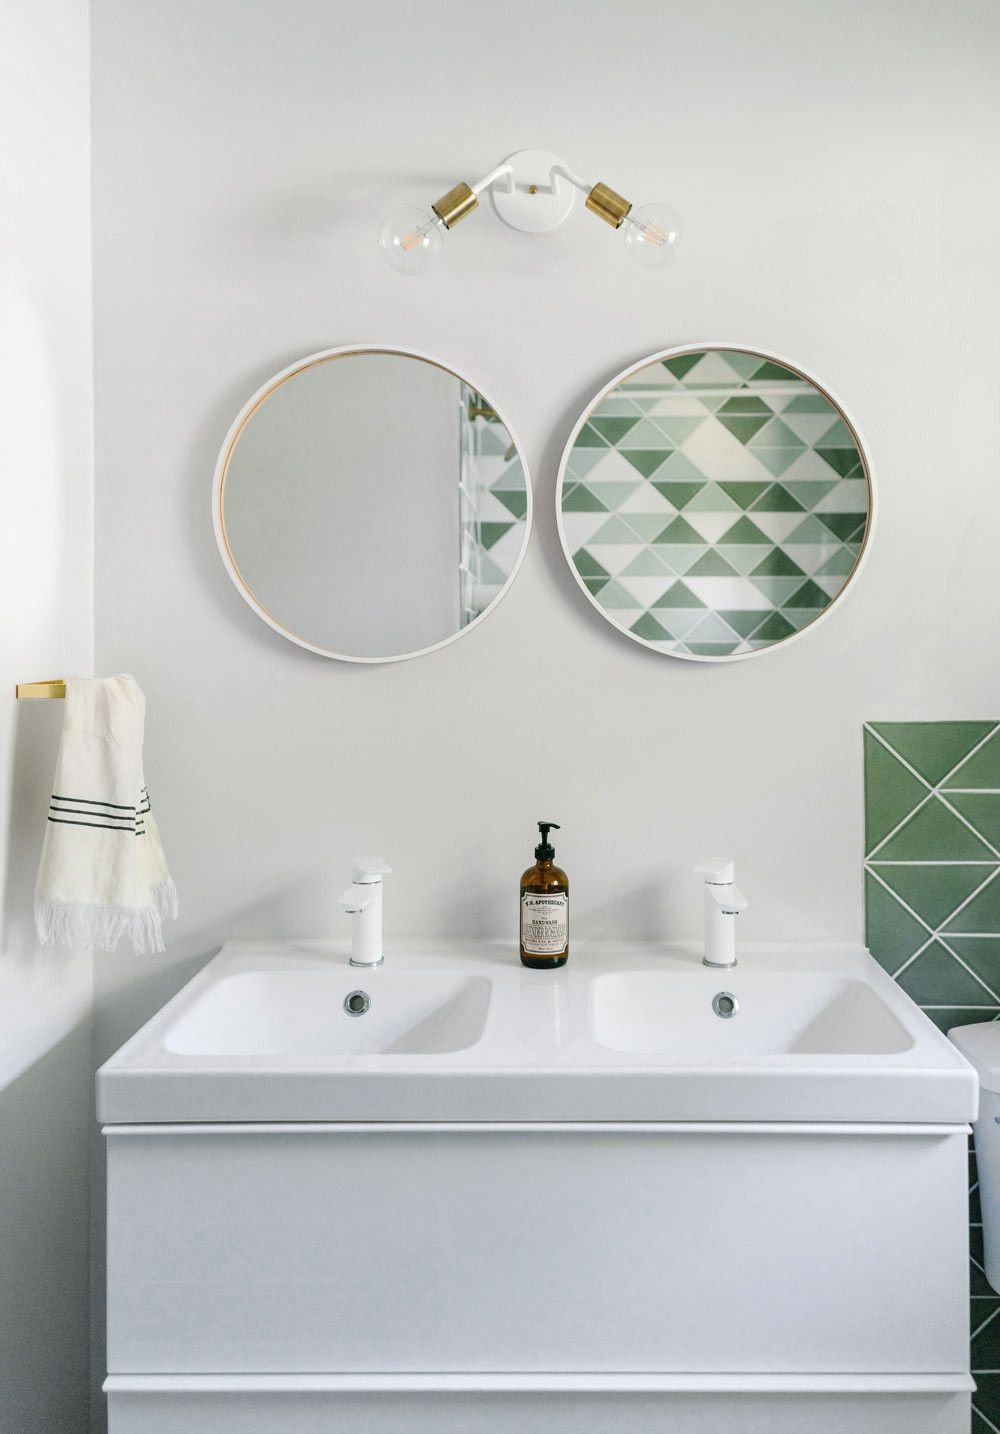 Recently featured in Design Sponge, designer/photographer Chase ...